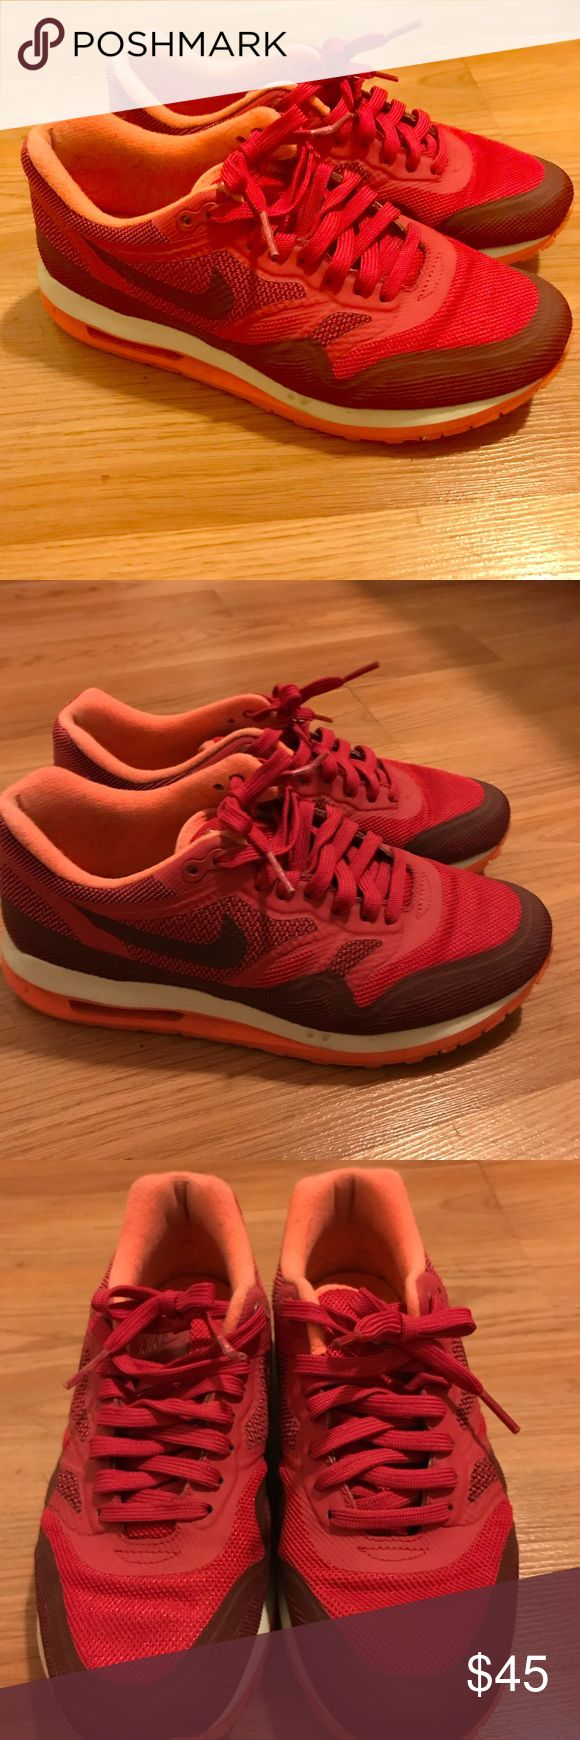 Women's pink Nike Airmax size 7 Size 7 Women's Air Max